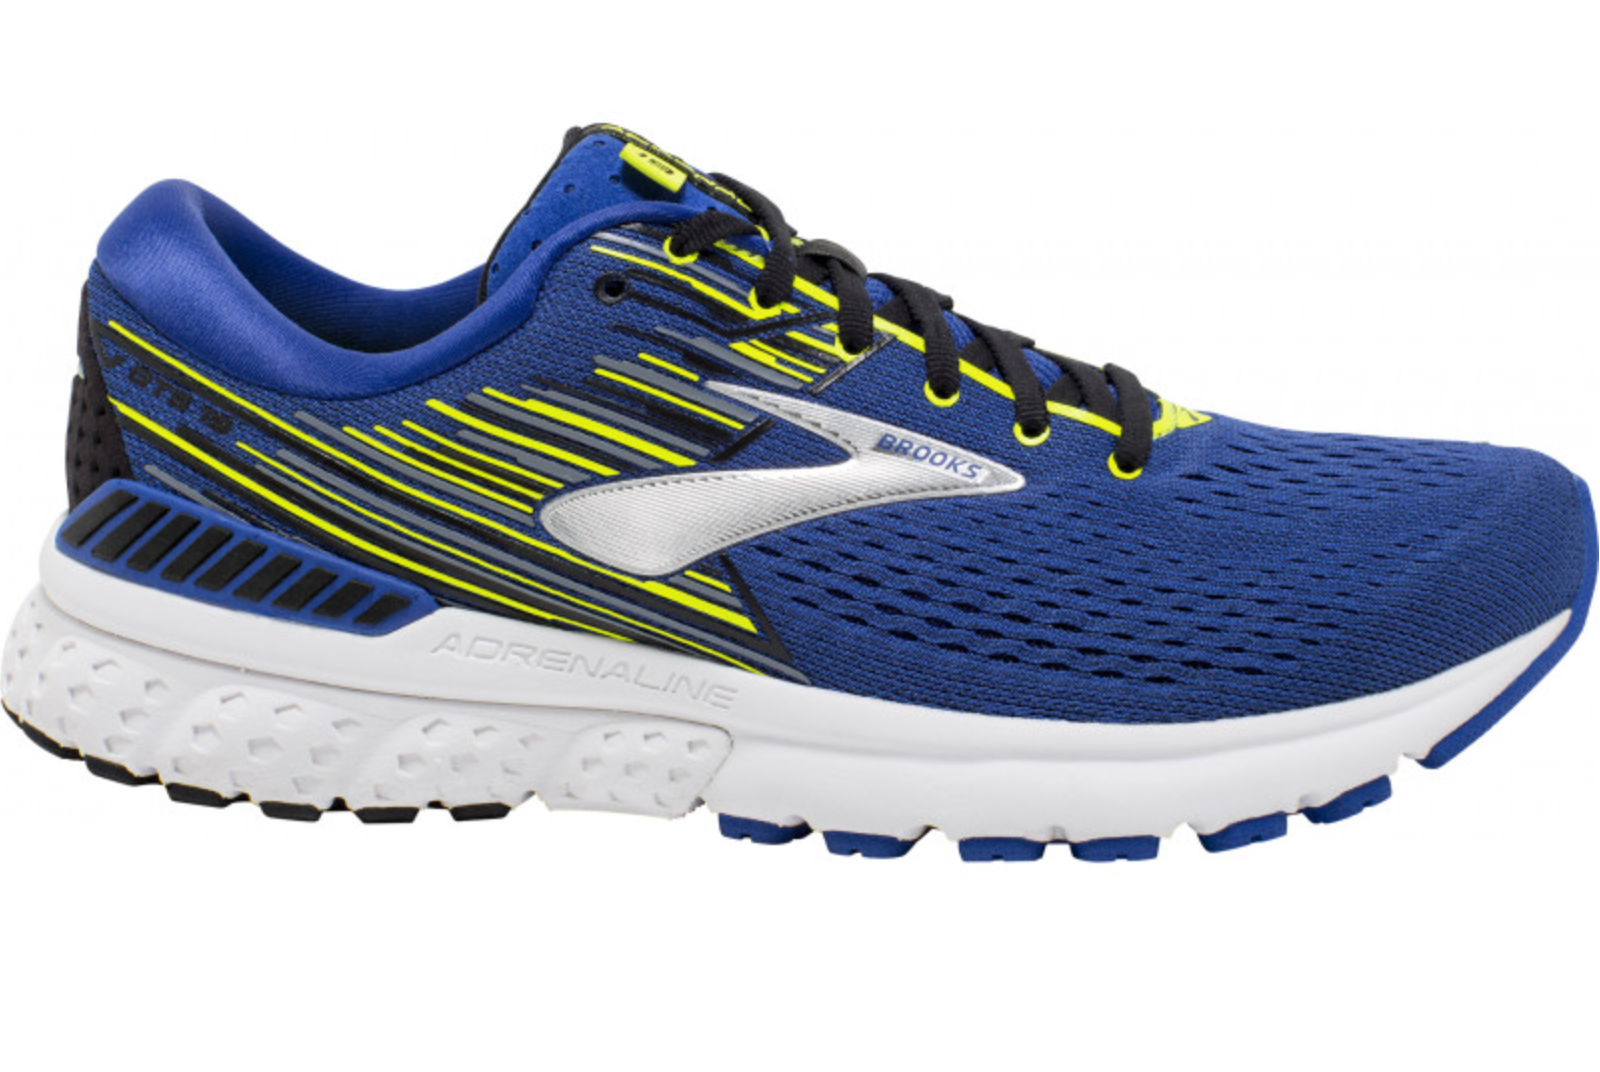 3dba106a8e6 Brooks Adrenaline GTS 19 Mens Running Shoes - 110294 1D429 – The Fitness  Fairy